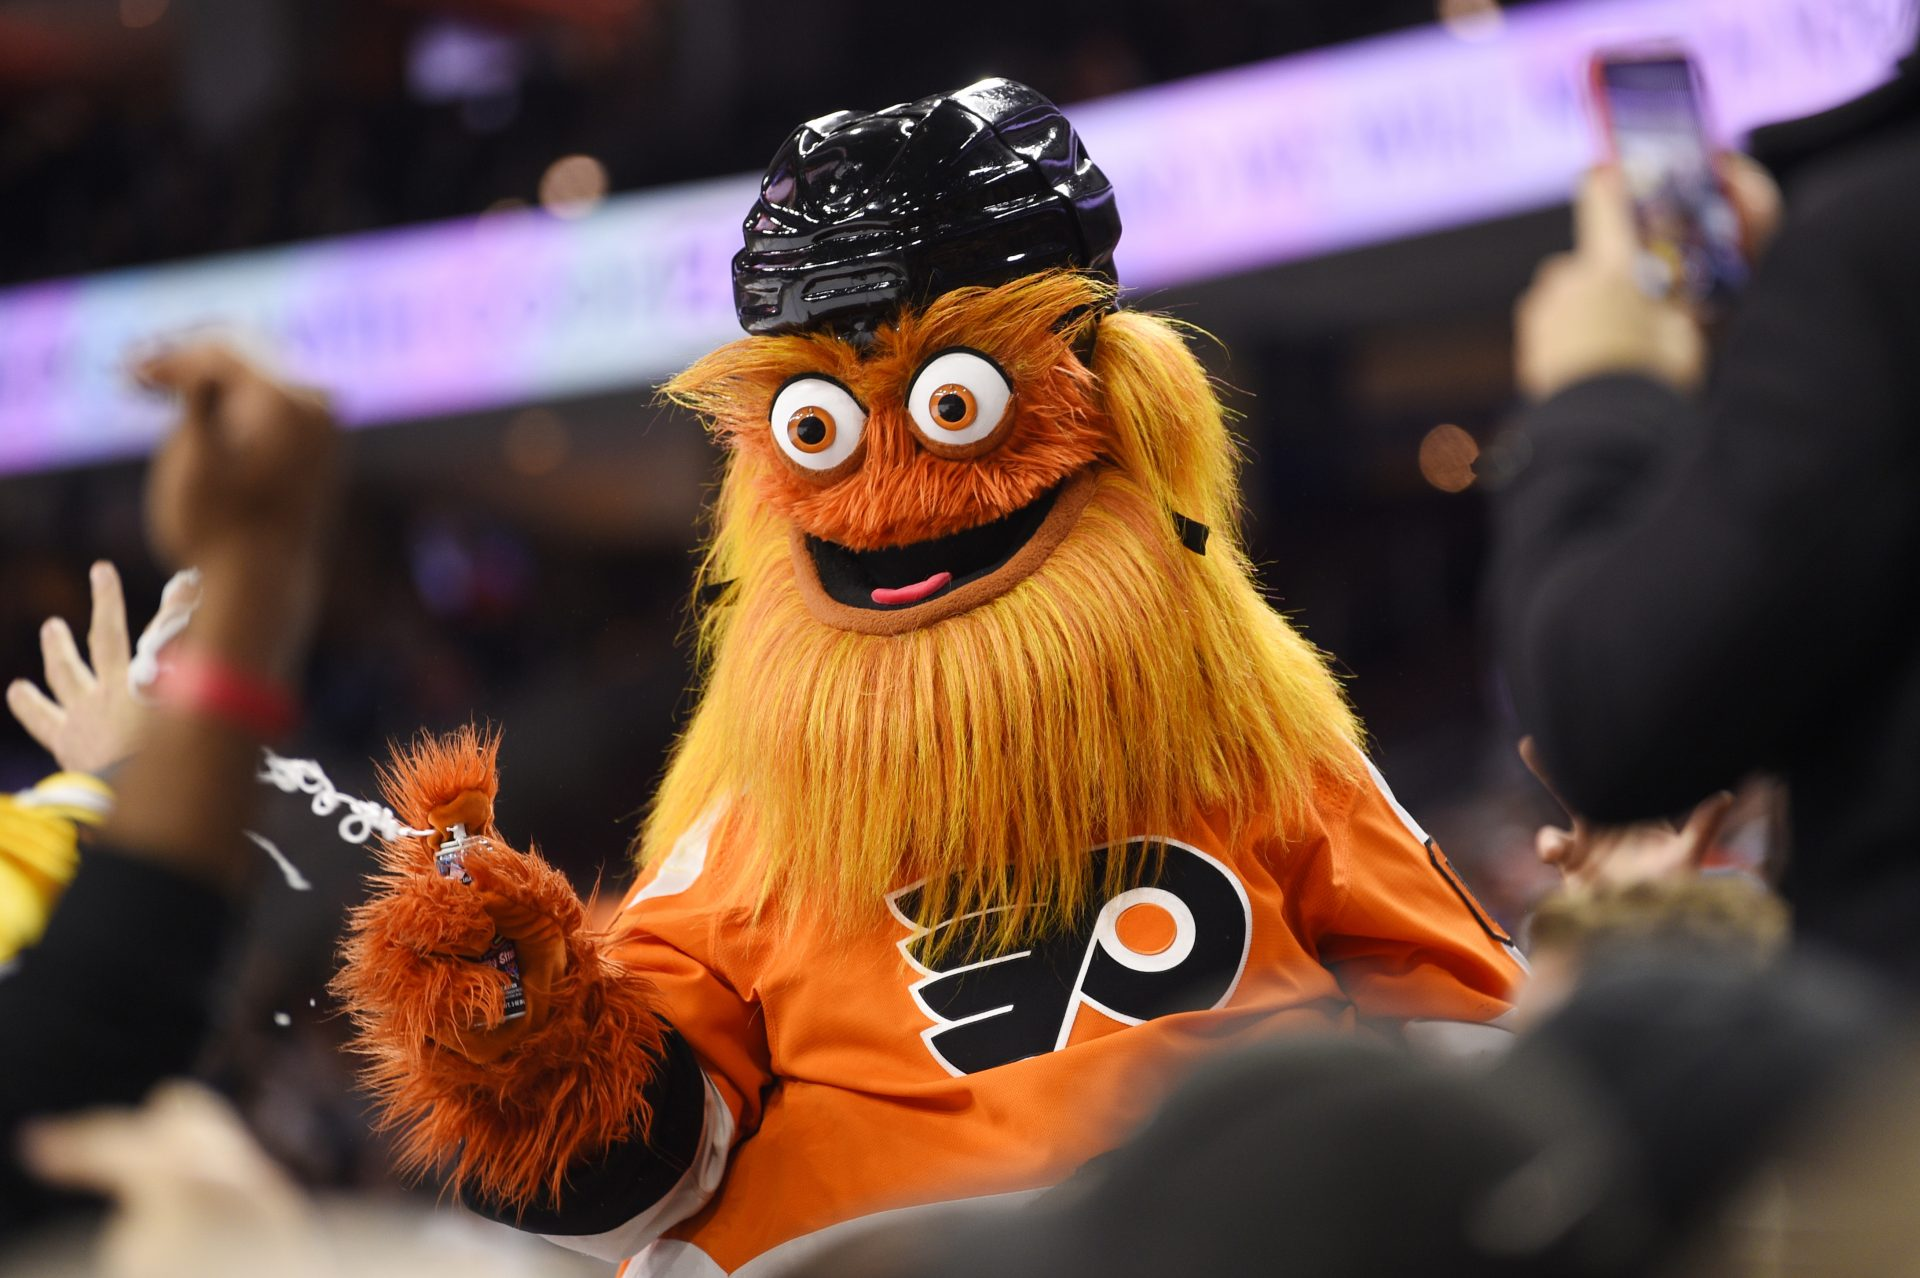 In this Monday, Jan. 13, 2020 file photo, the Philadelphia Flyers' mascot, Gritty, performs during an NHL hockey game in Philadelphia.